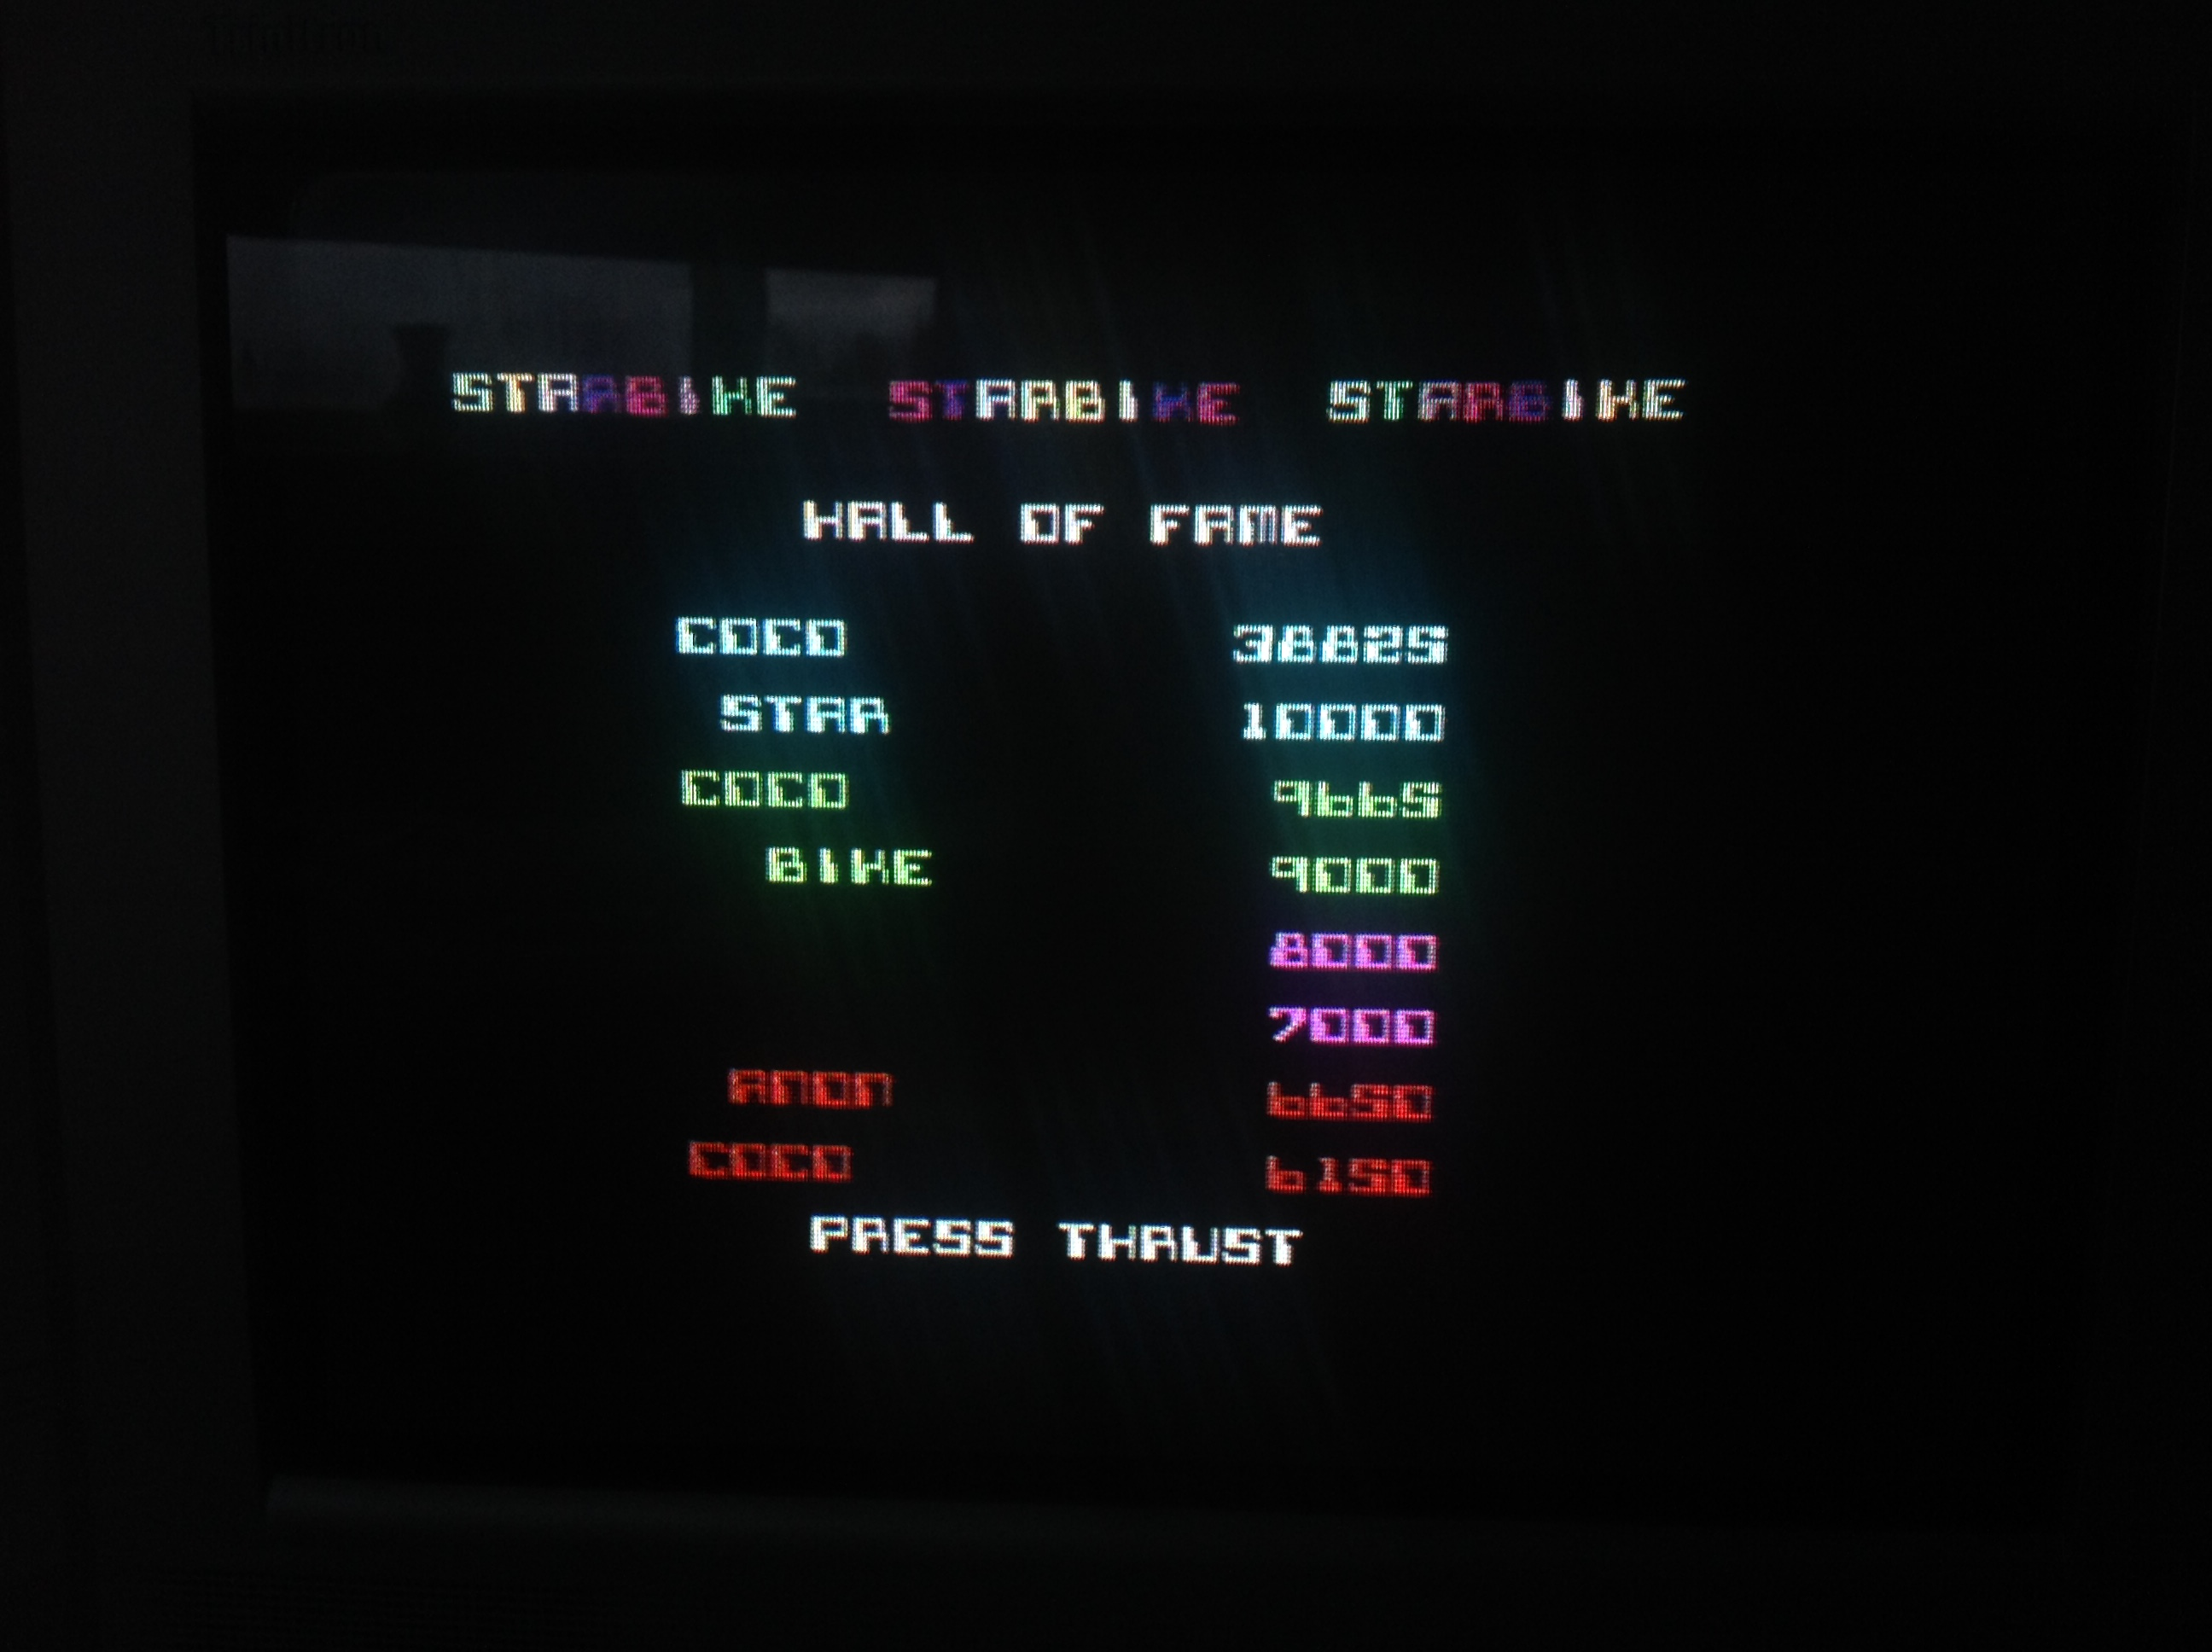 CoCoForest: Starbike (ZX Spectrum) 38,825 points on 2016-01-04 09:55:12